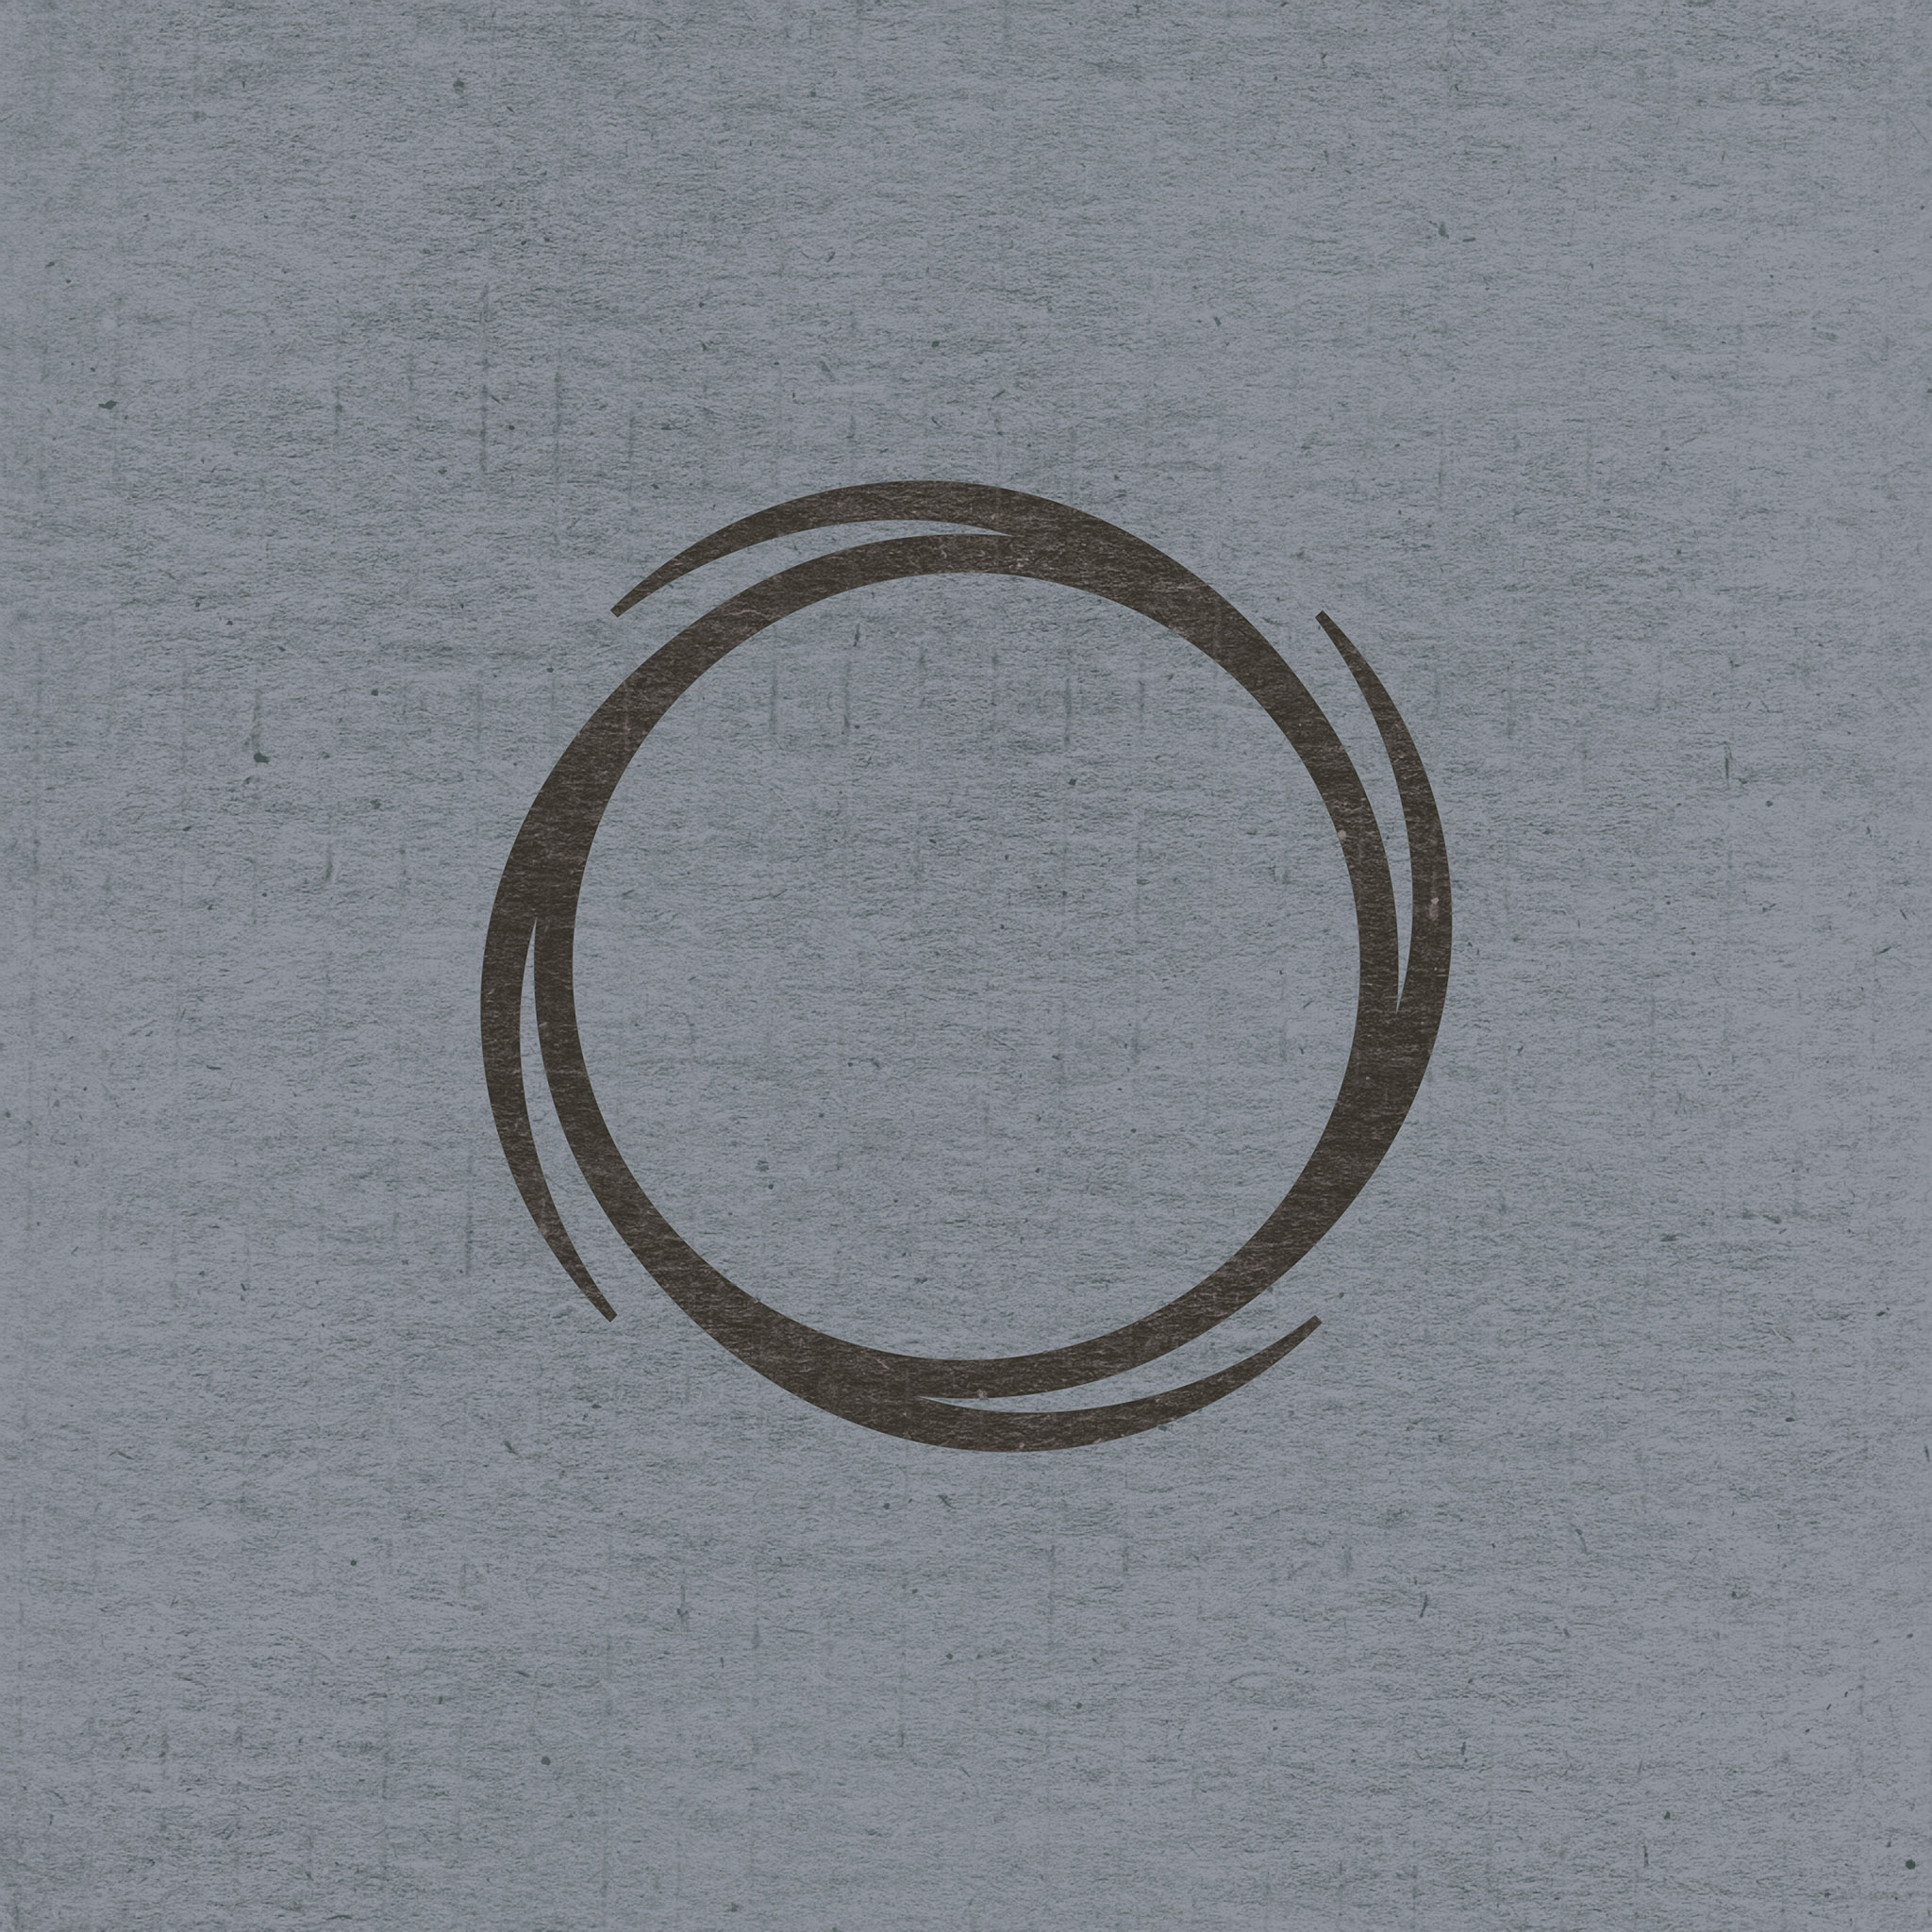 nine inch nails - the slip illustration ipad wallpaper